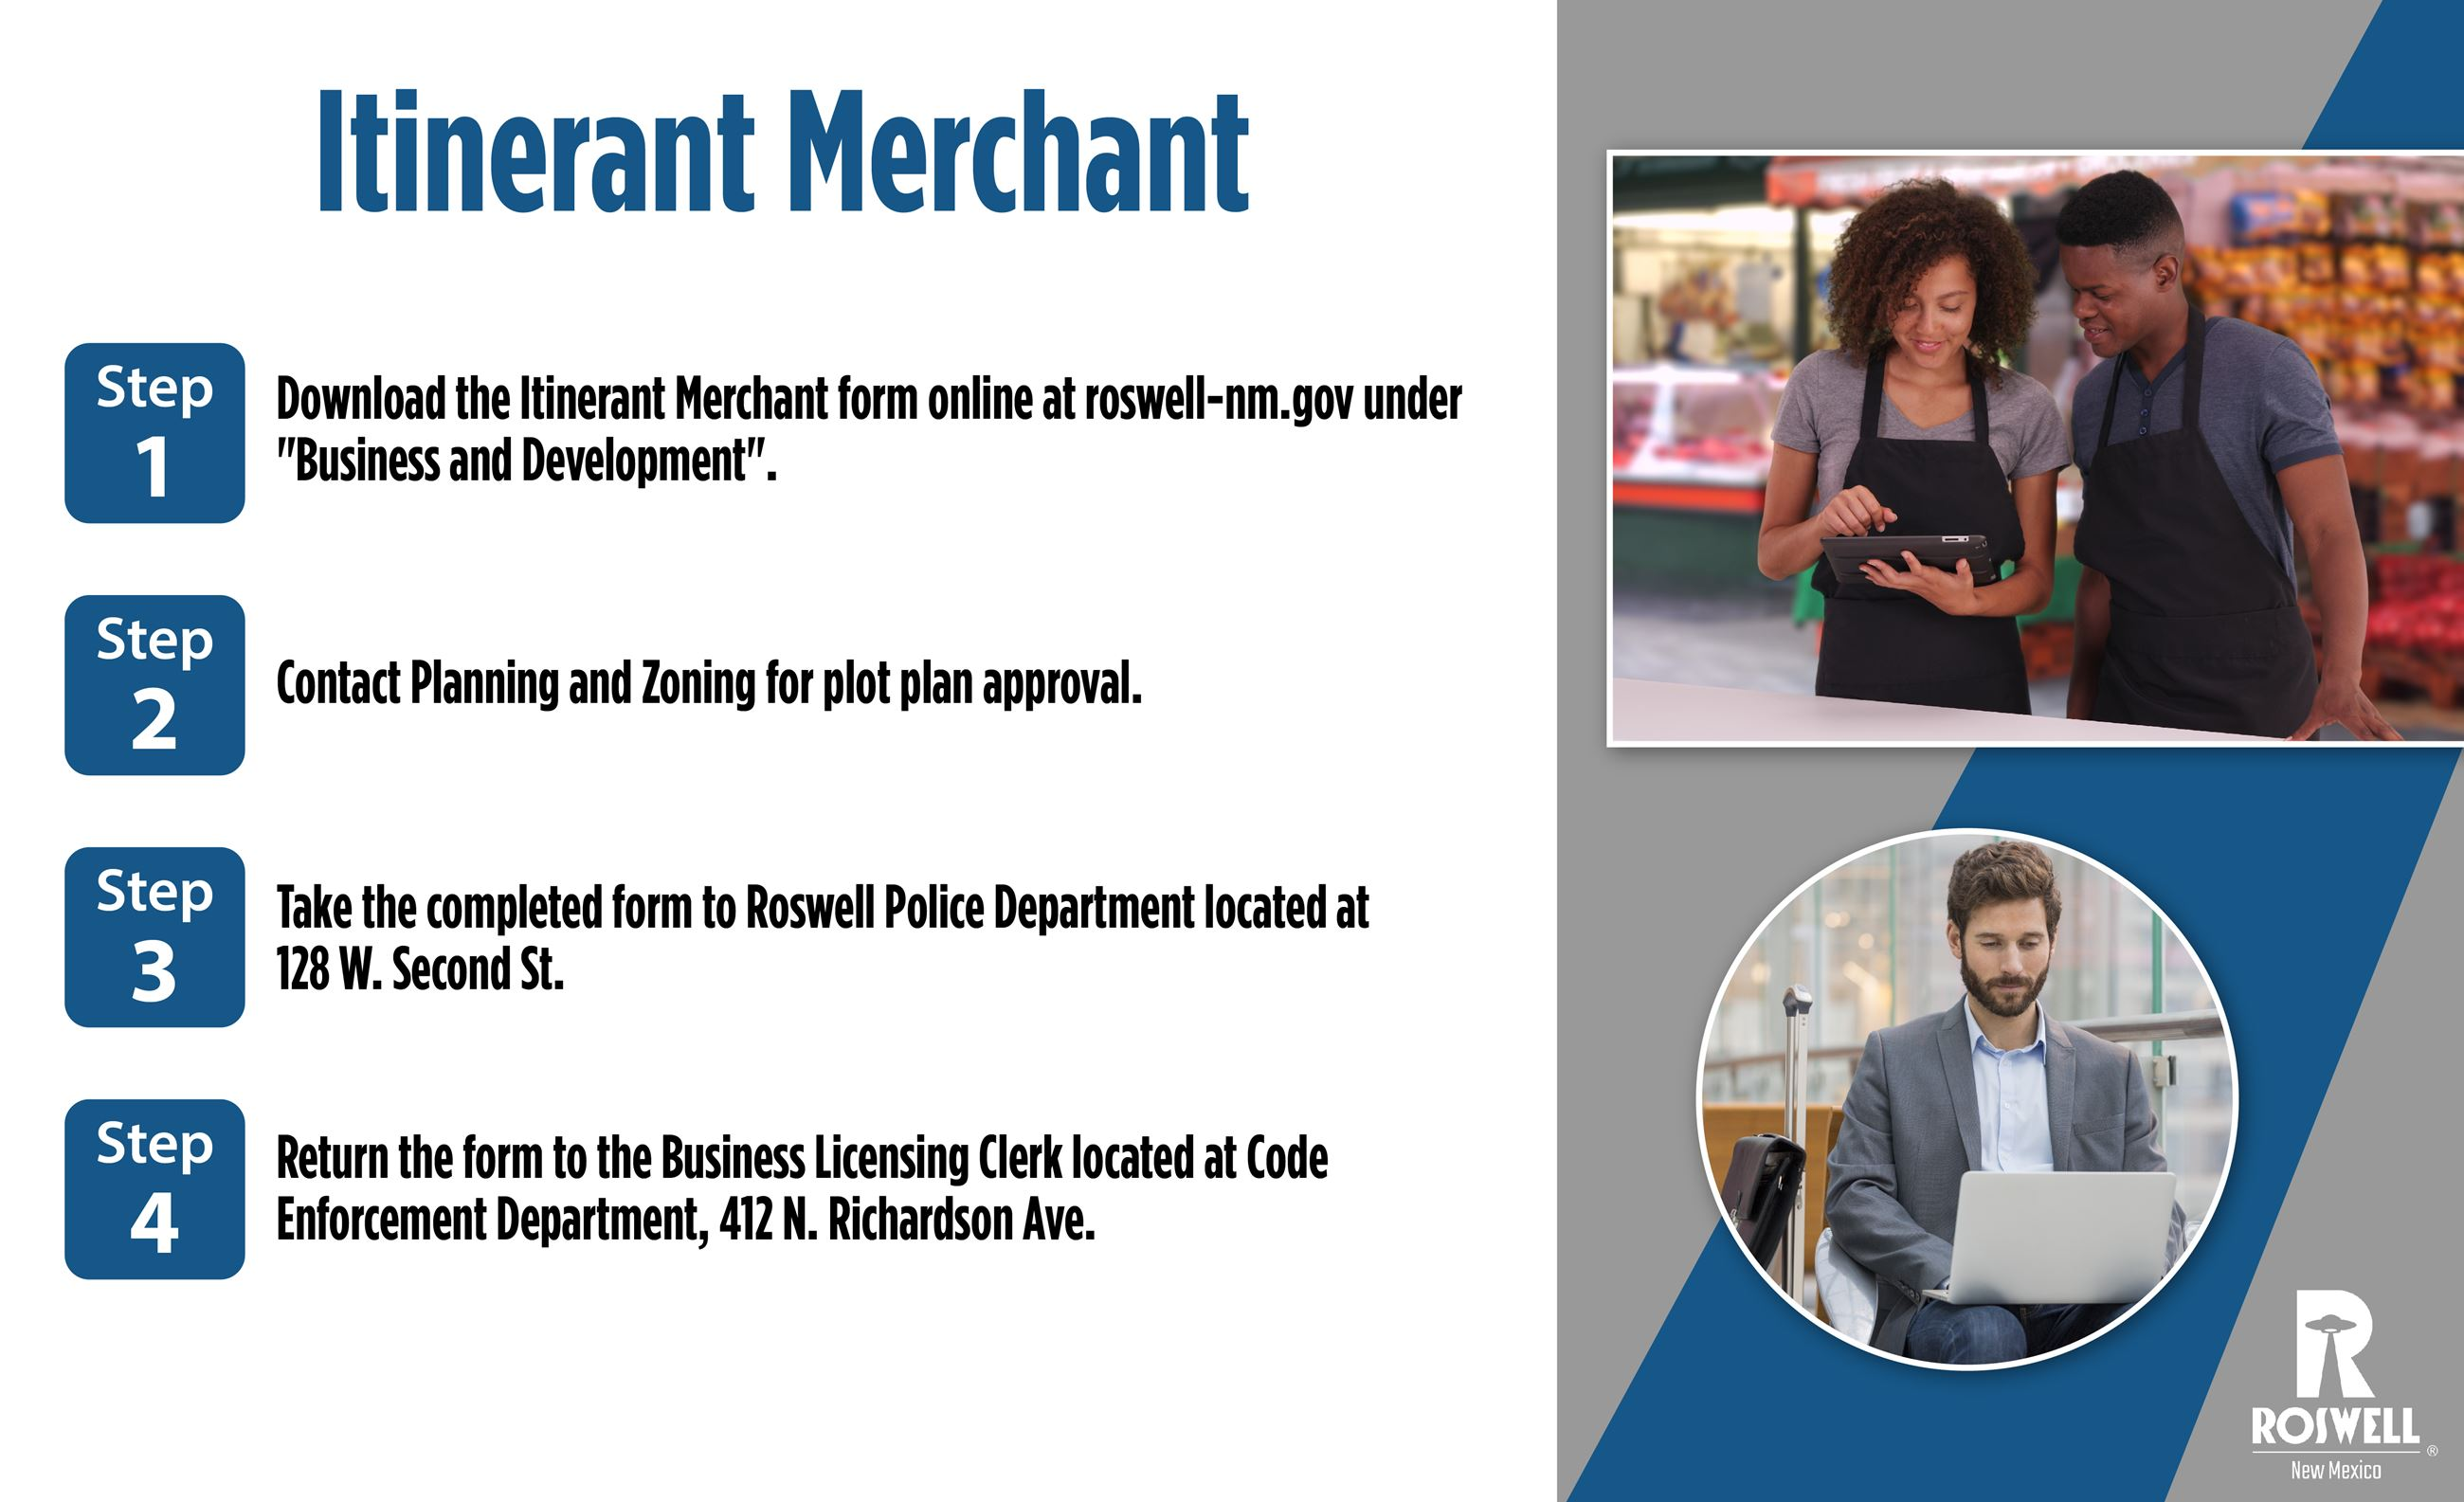 Info graphic with steps to obtain an Itinerant Merchant License